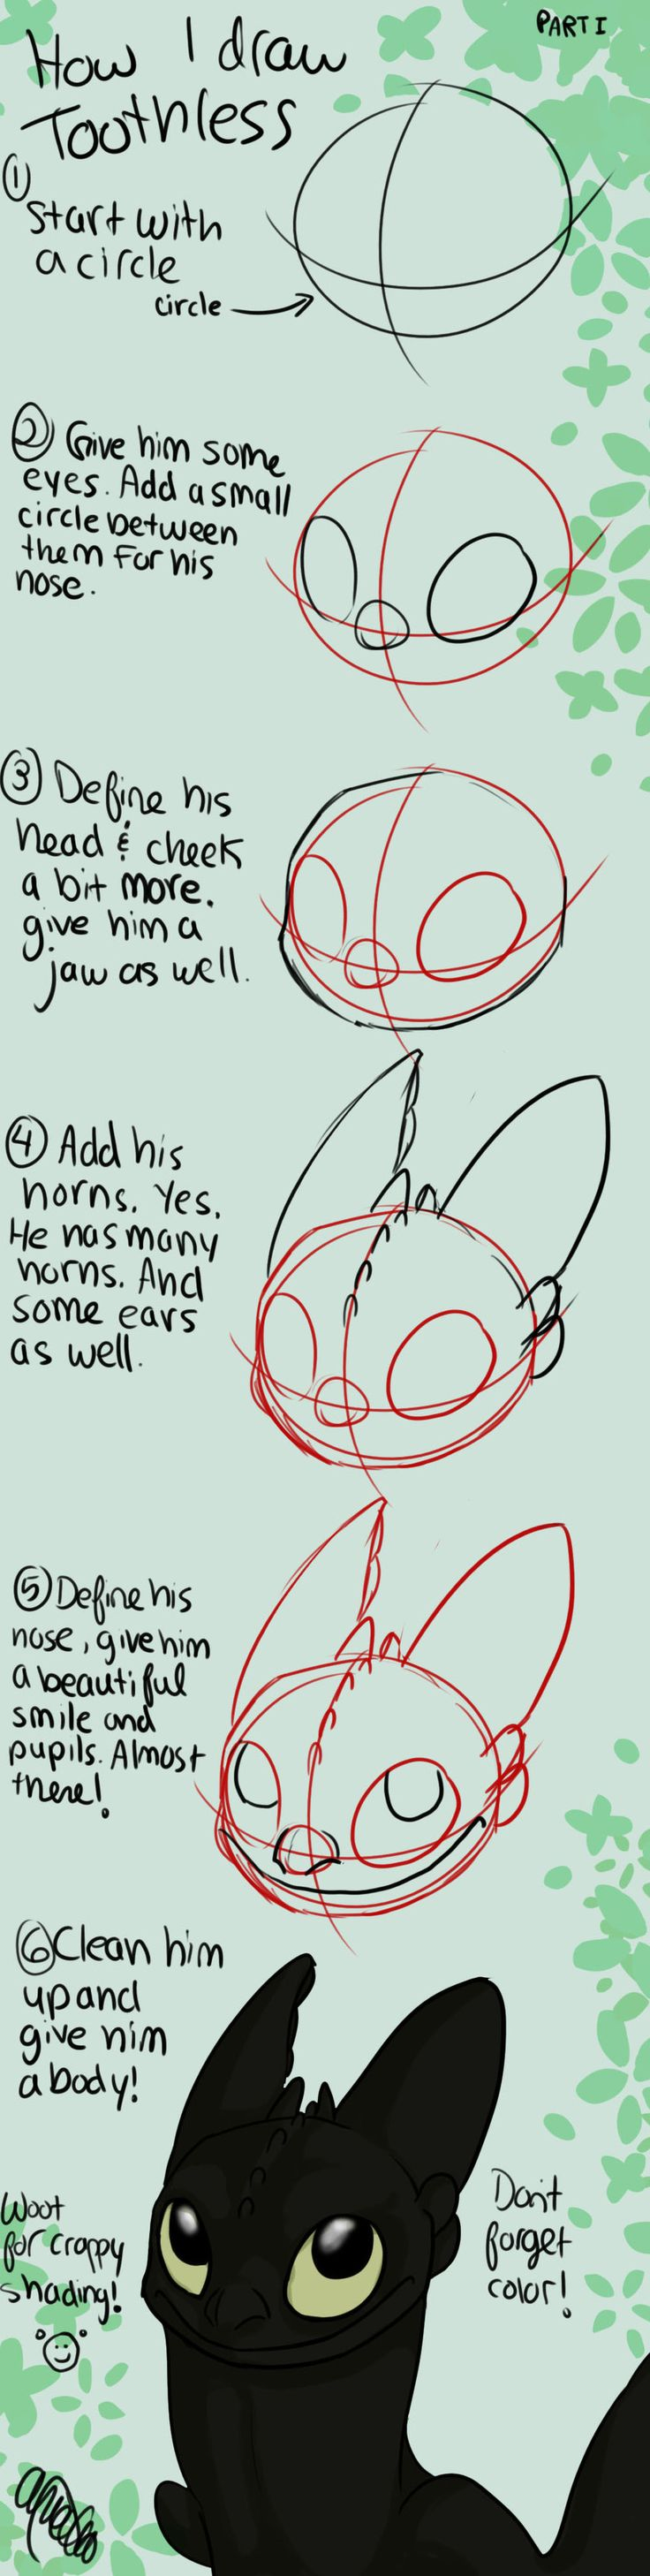 How to Draw Toothless Tutorial by Spiritwollf.deviantart.com on @deviantART